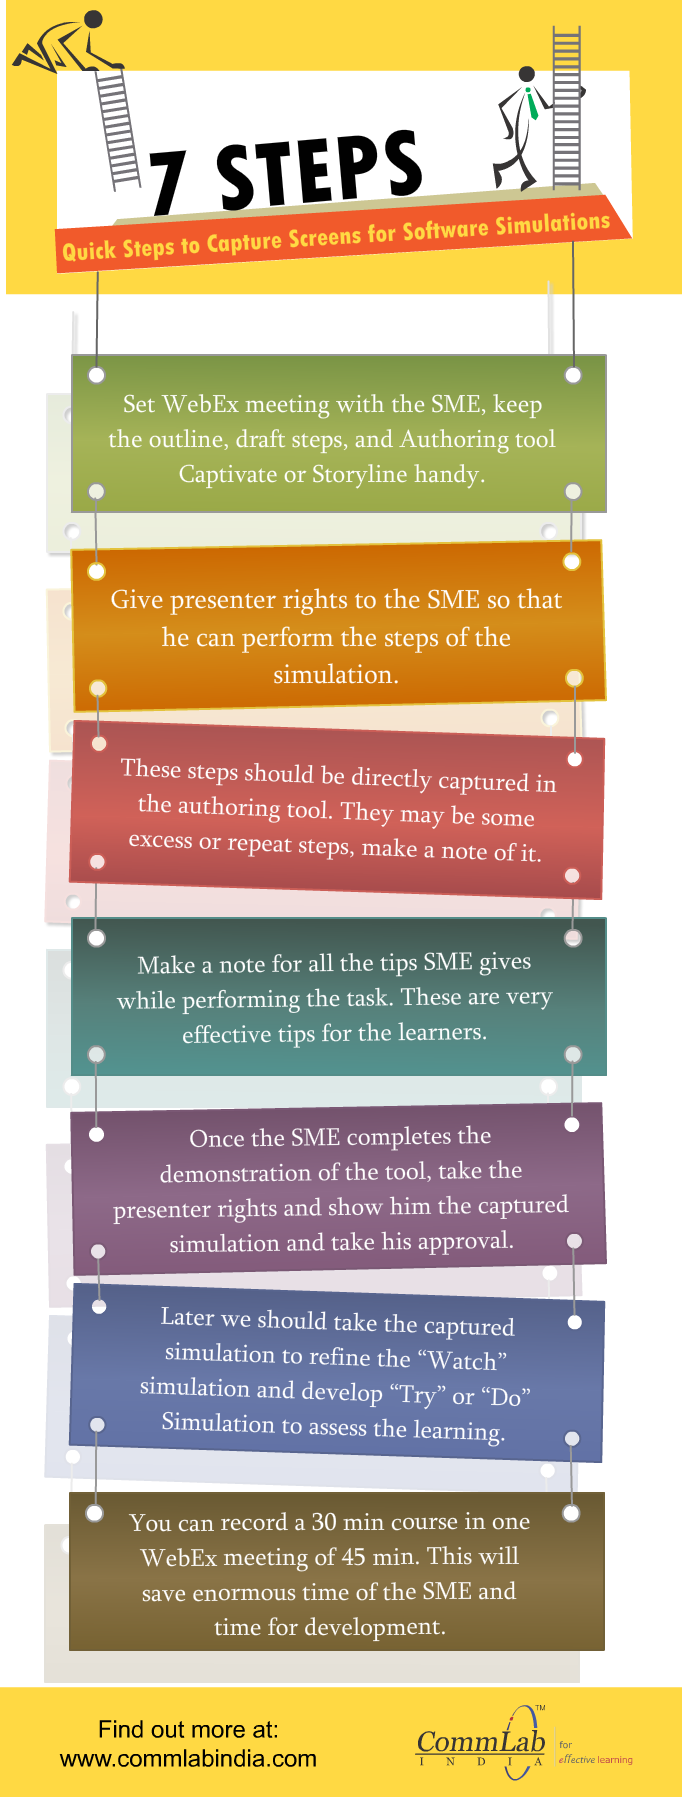 7 Quick Steps to Capture Screens for Software Simulations [Infographic]